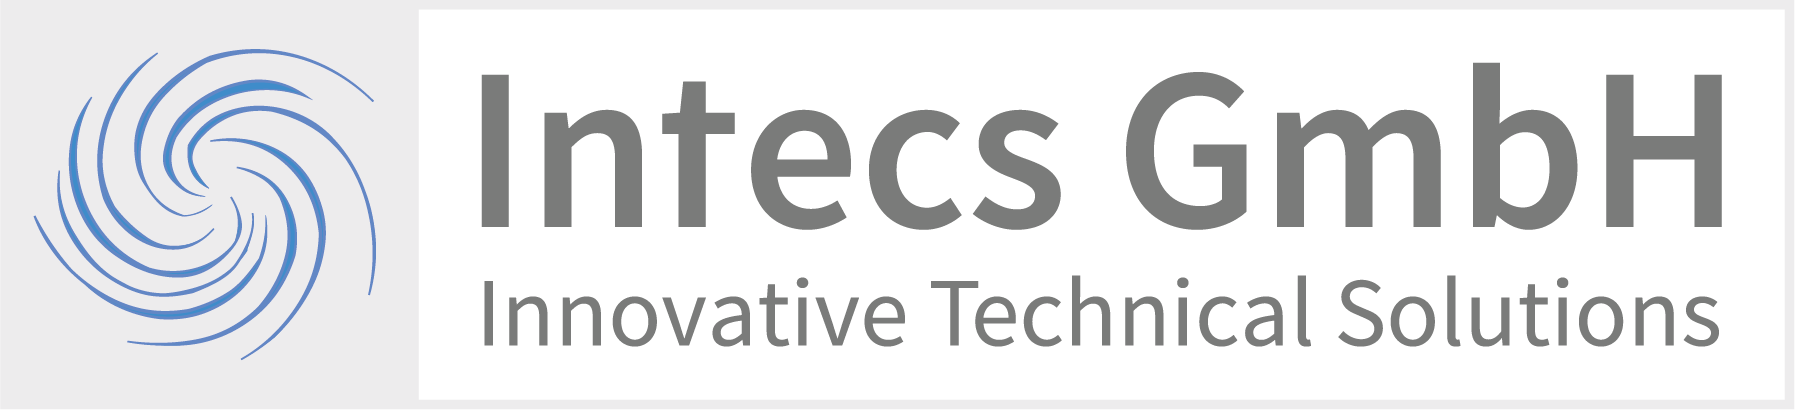 Intecs Logo